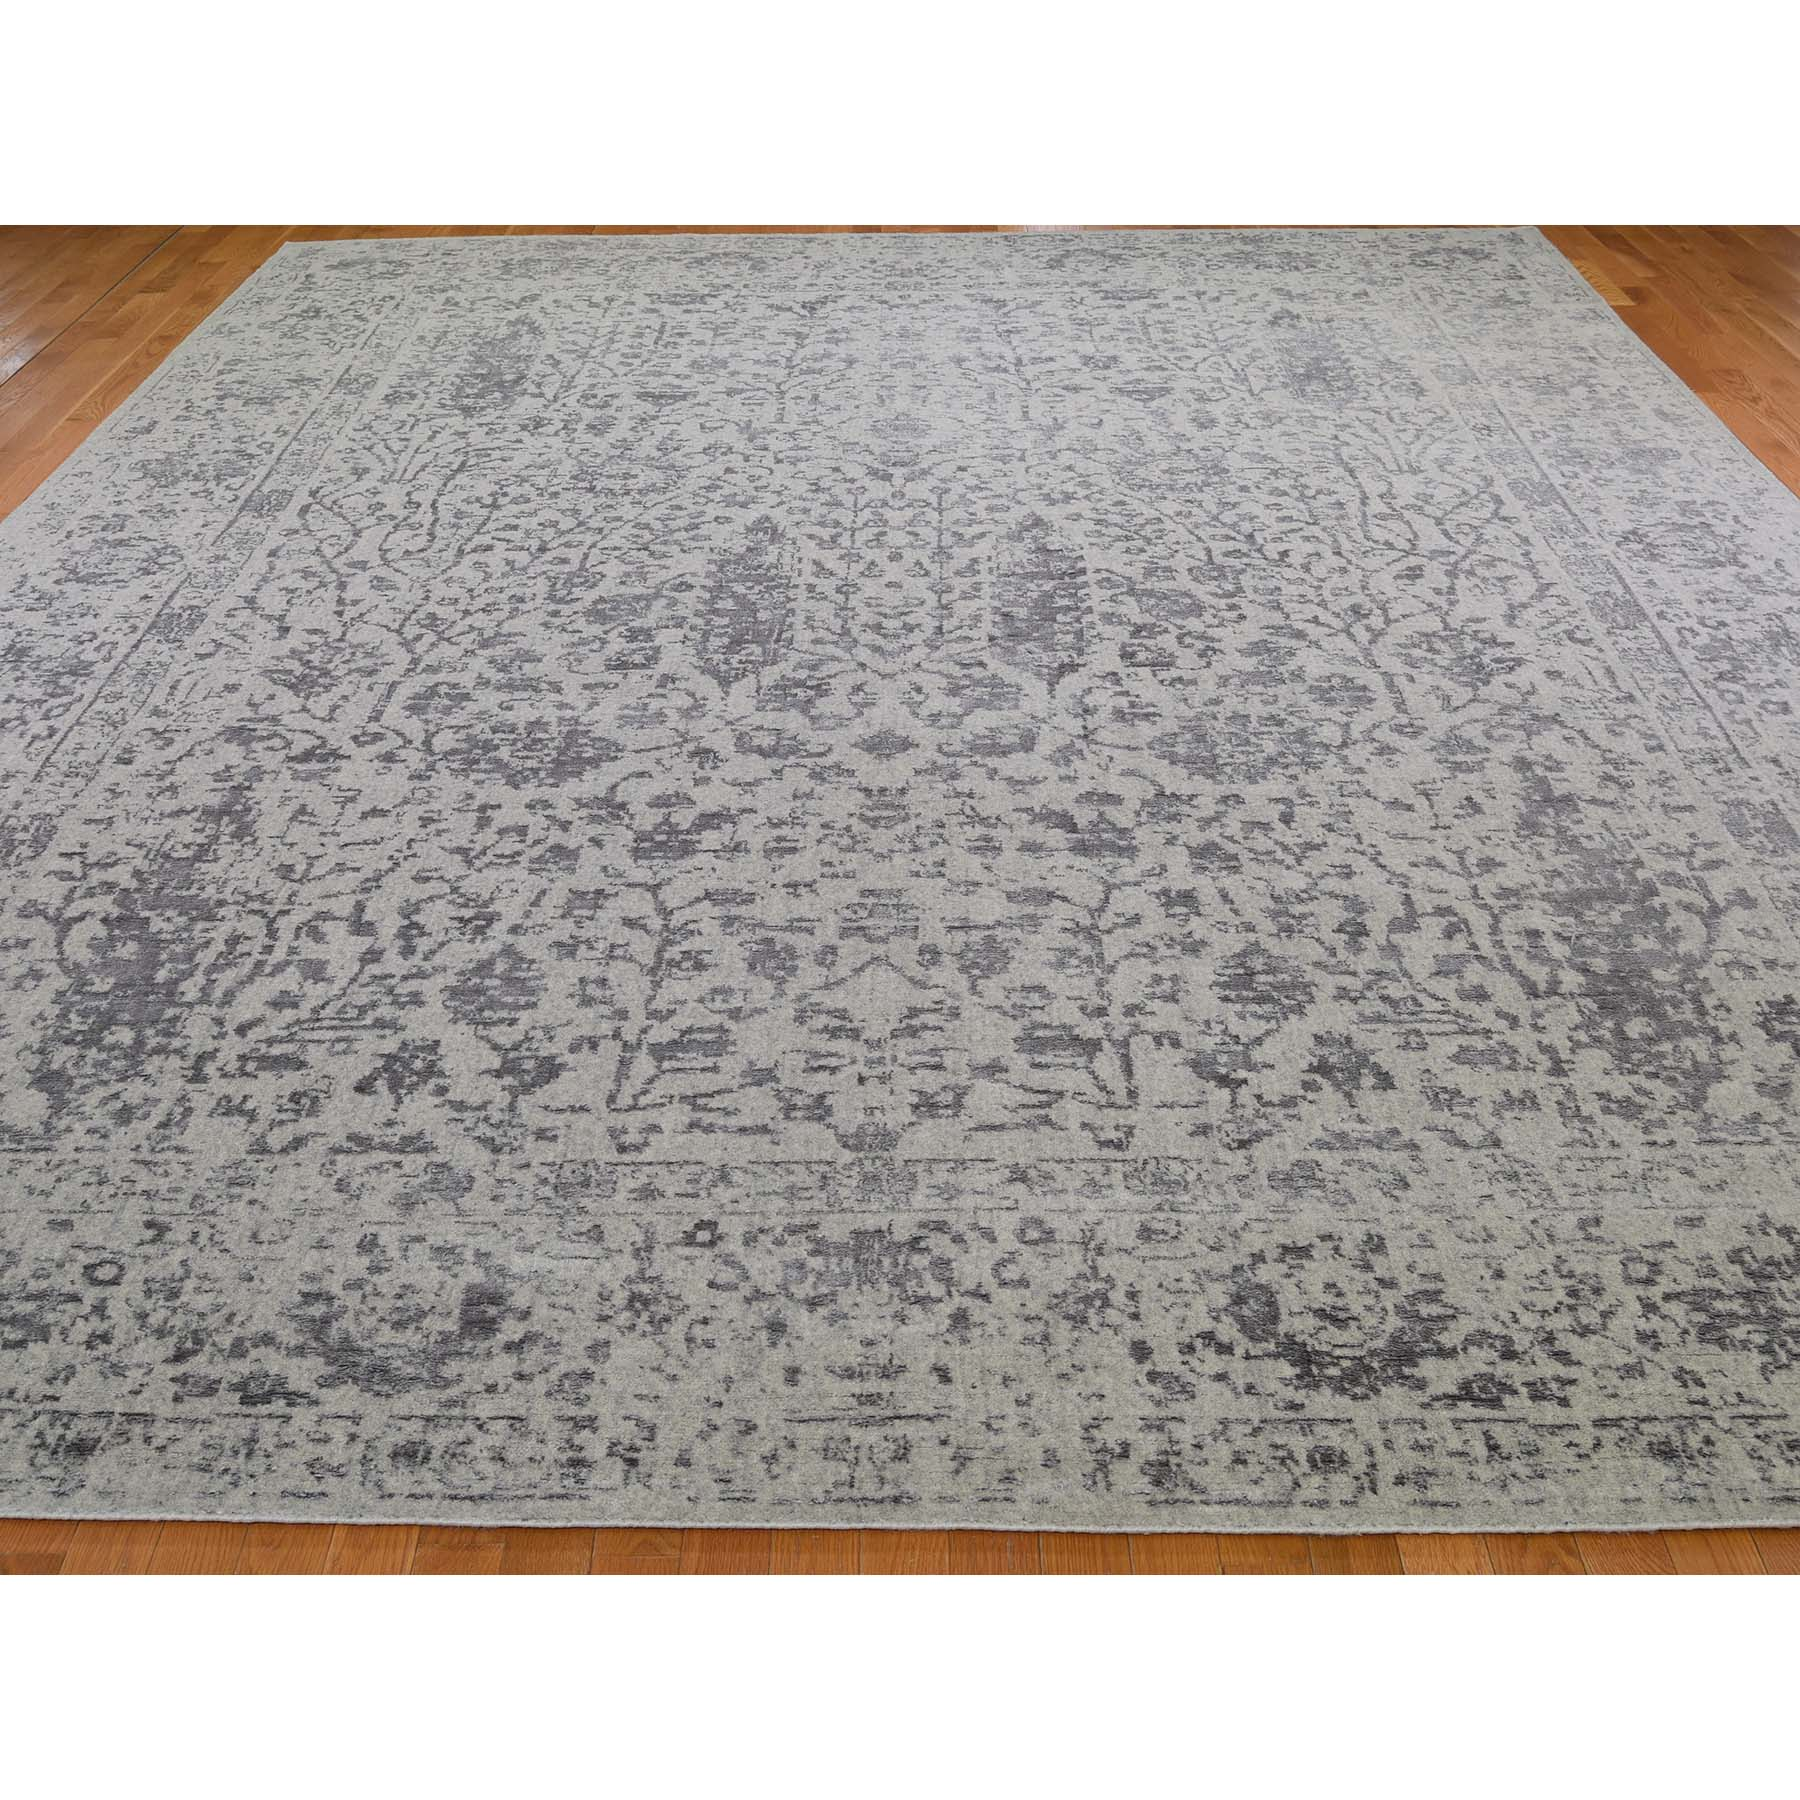 11-8 x14-10  Gray Oversized Broken Cypress Tree Design Wool & Silk Thick Hand-Loomed Oriental Rug